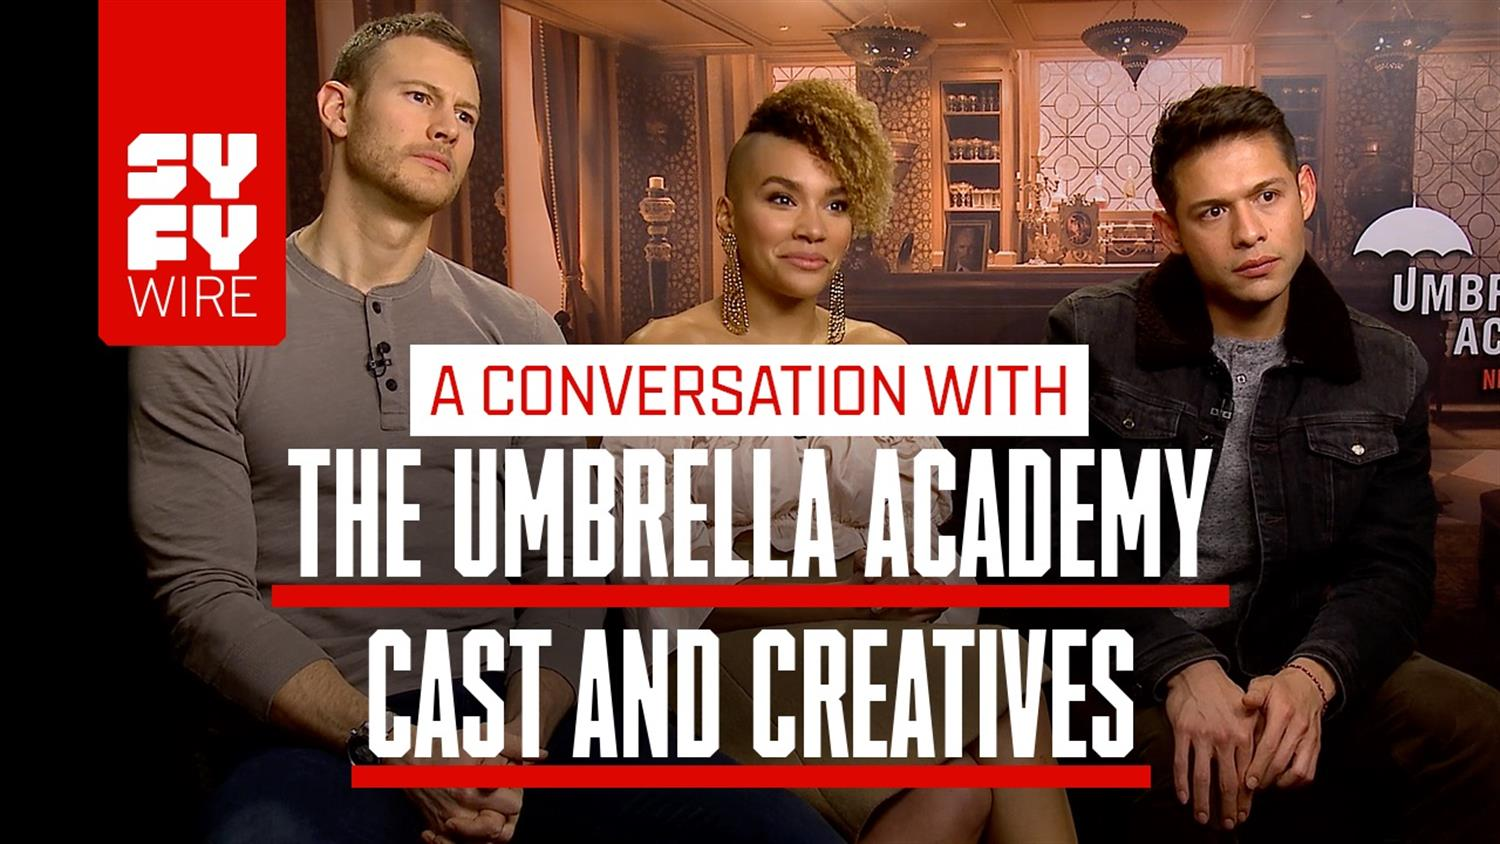 Umbrella Academy Cast On Creating Chips & Honoring Comics